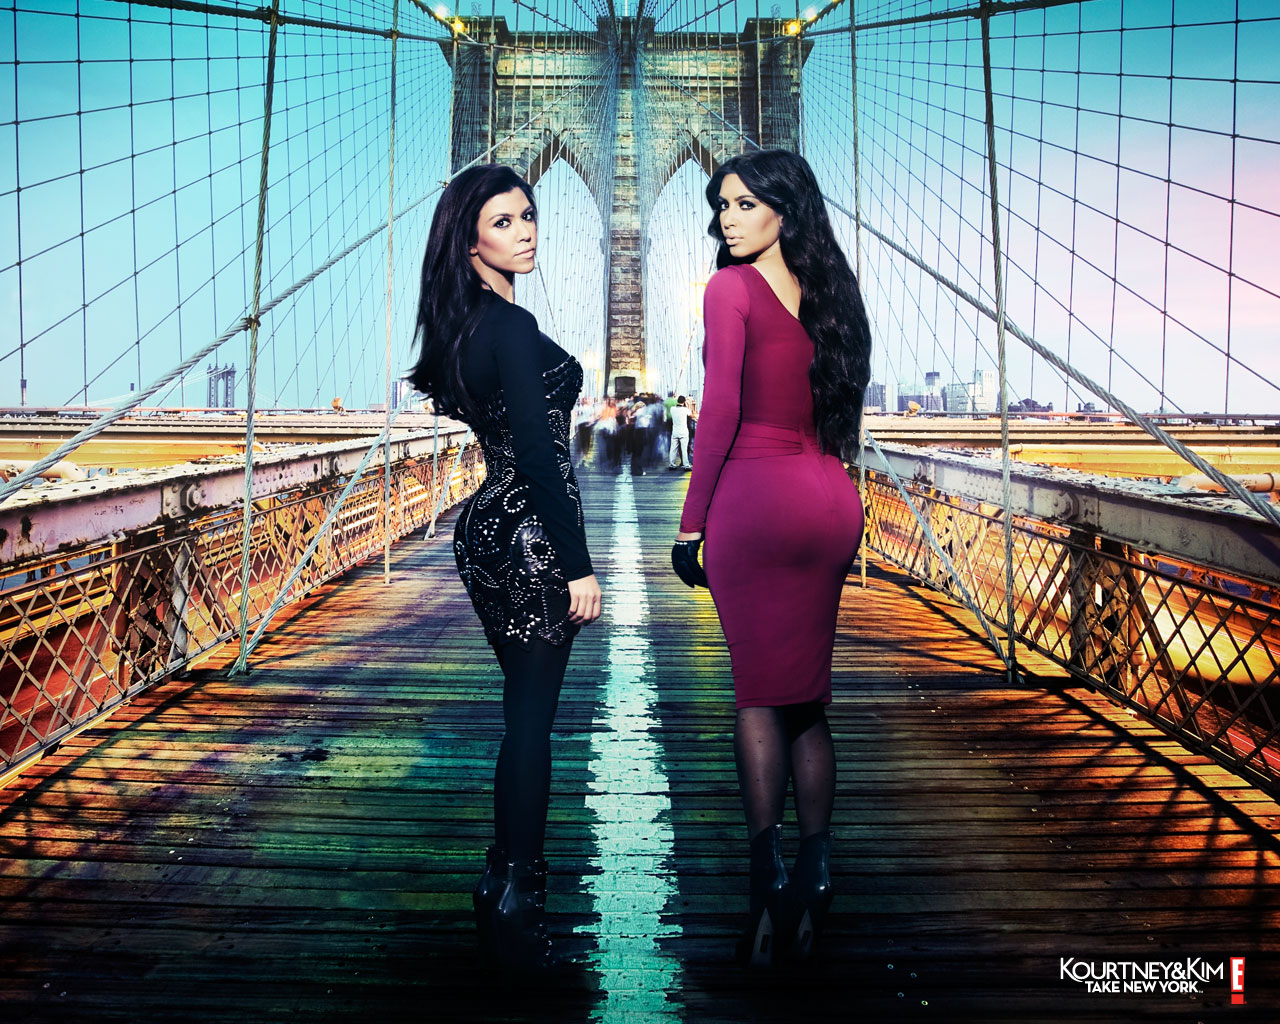 Kourtney Kardashian and Kim Kardashian on a bridge for Kourtney and Kim Take New York